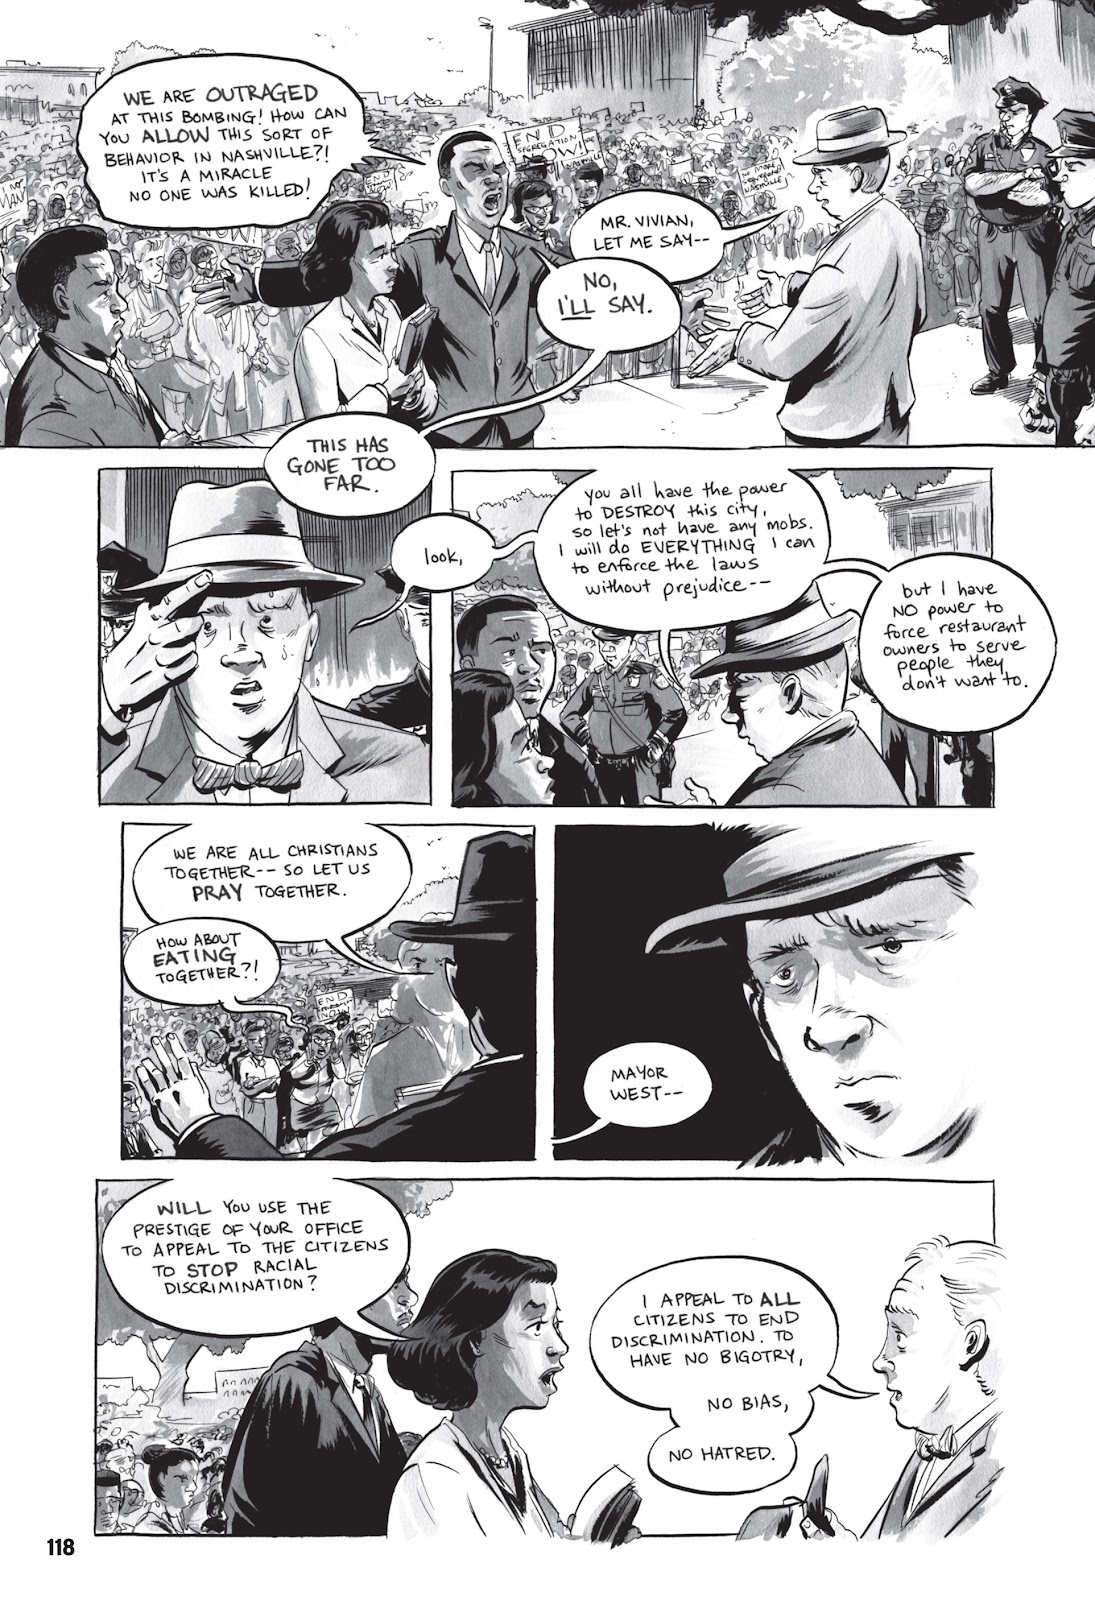 March 1 Page 115